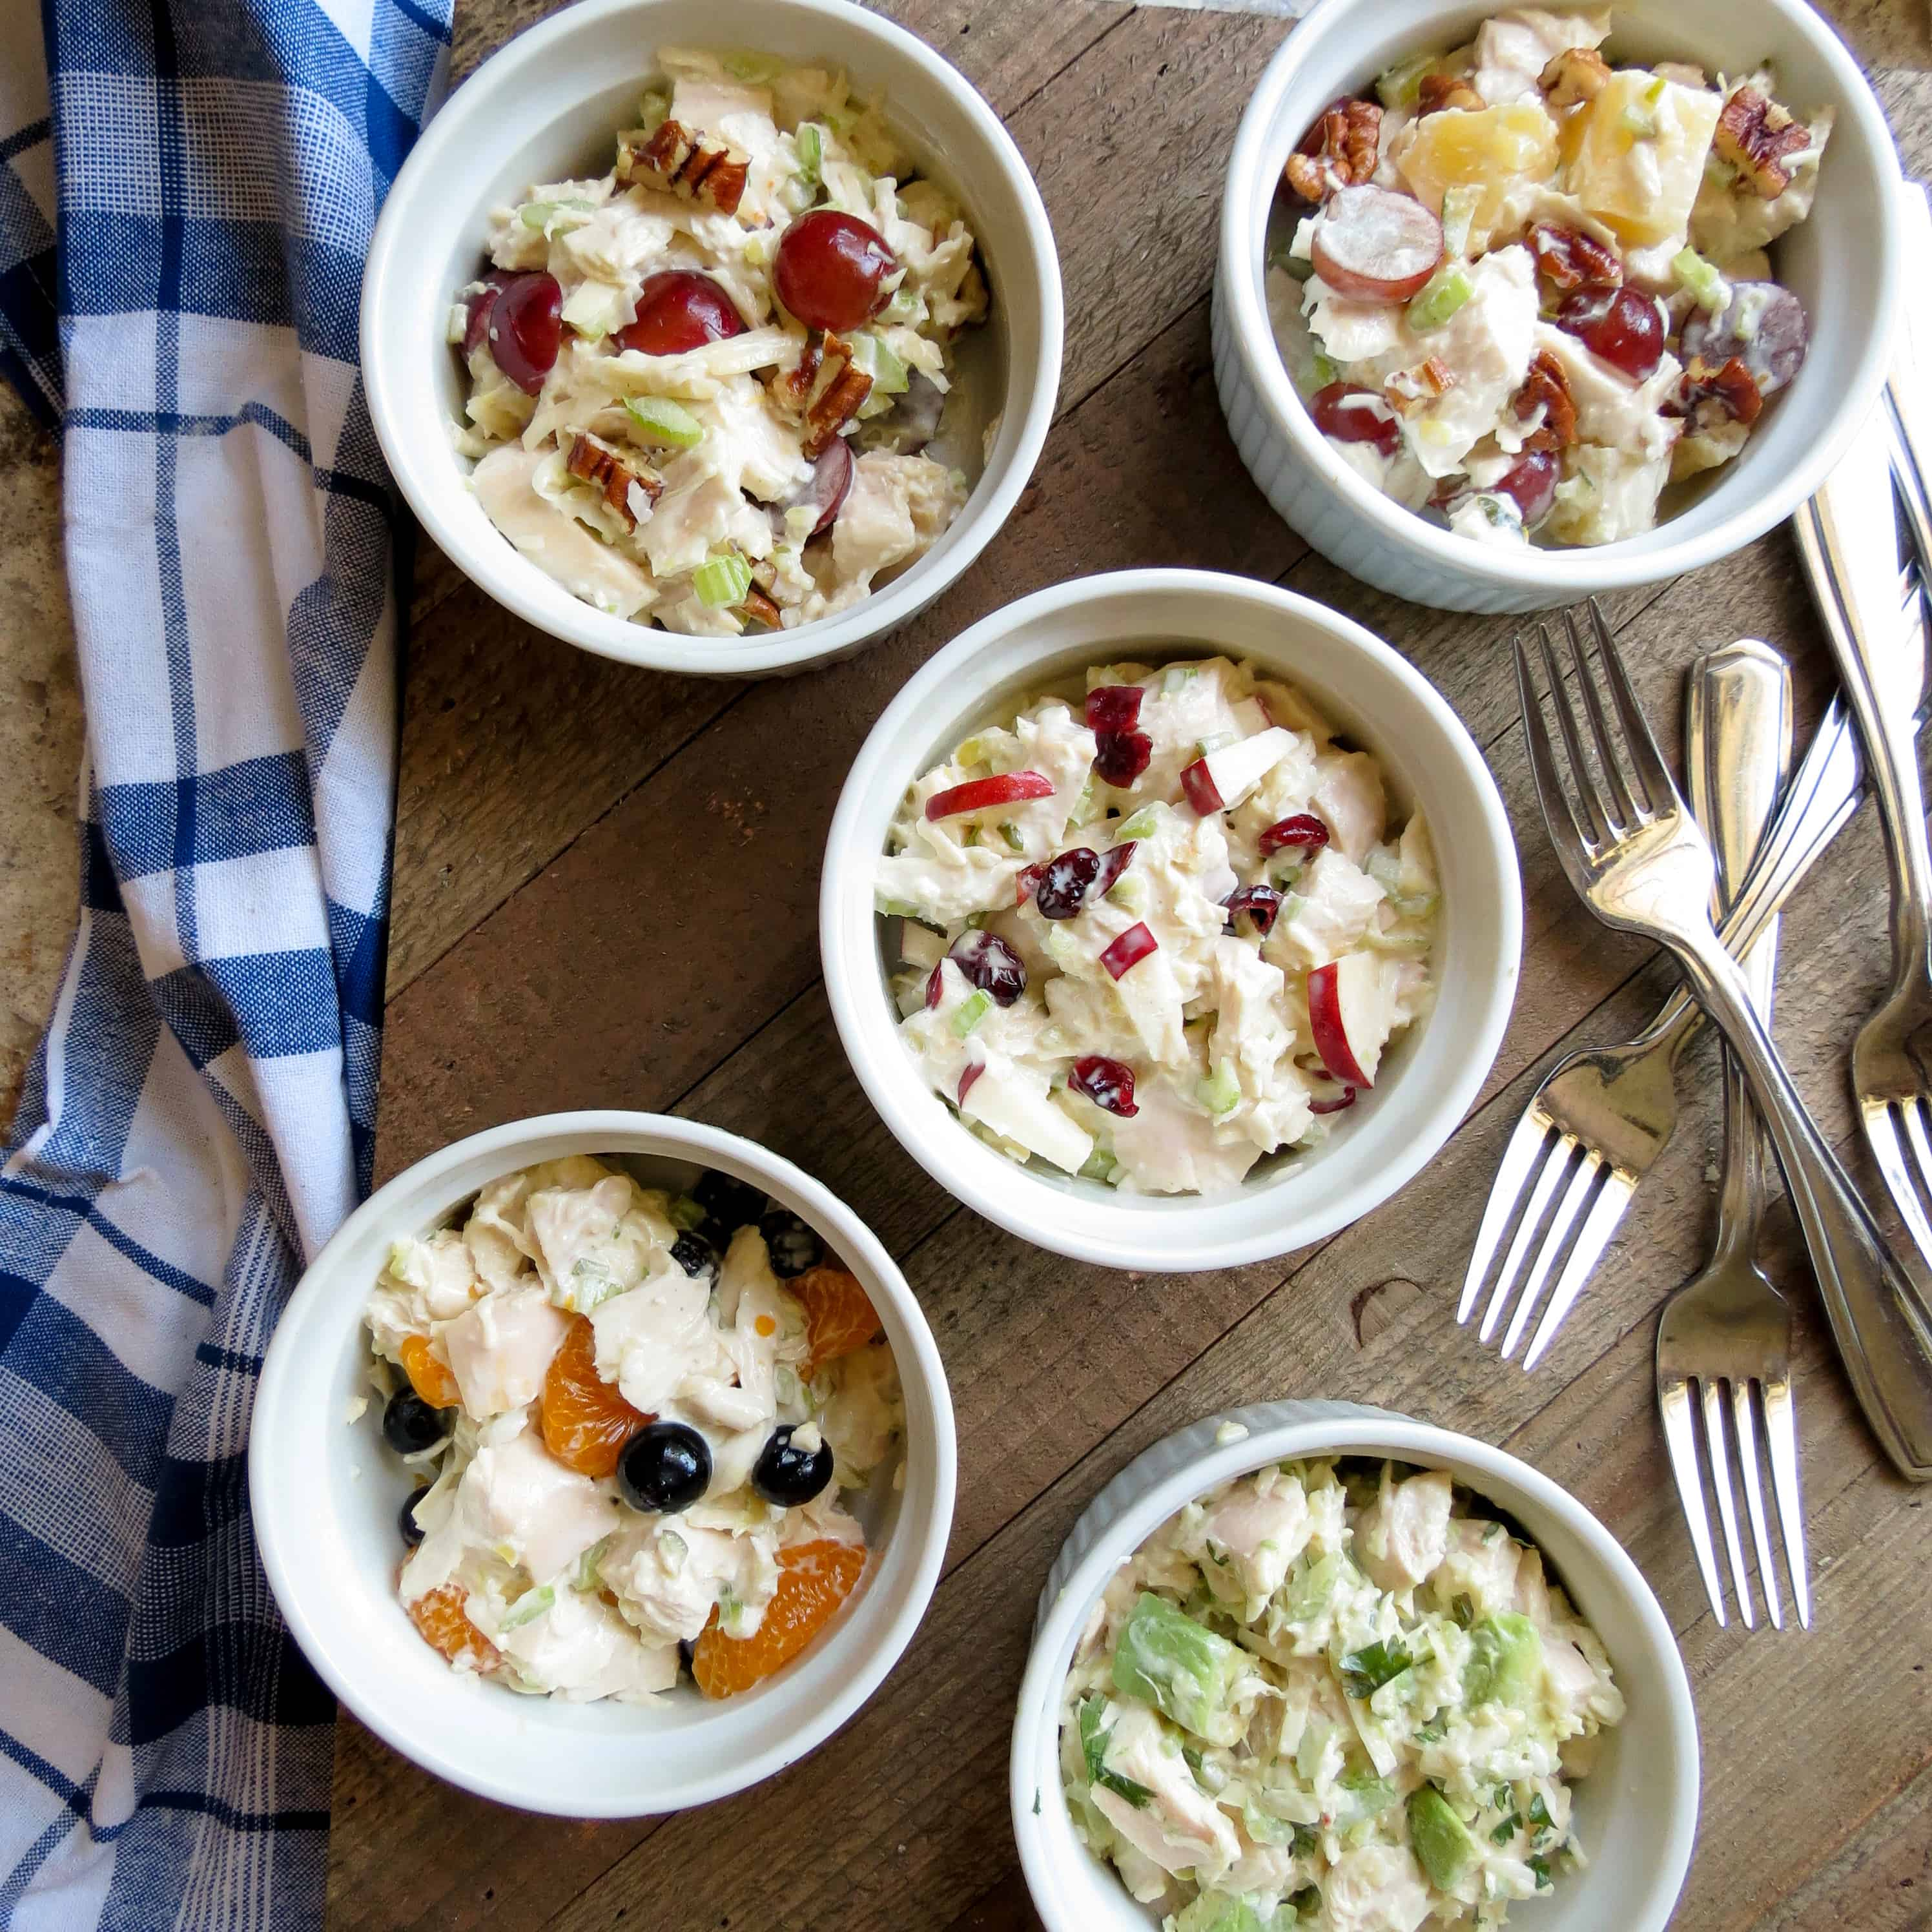 Chicken Salad Your Way